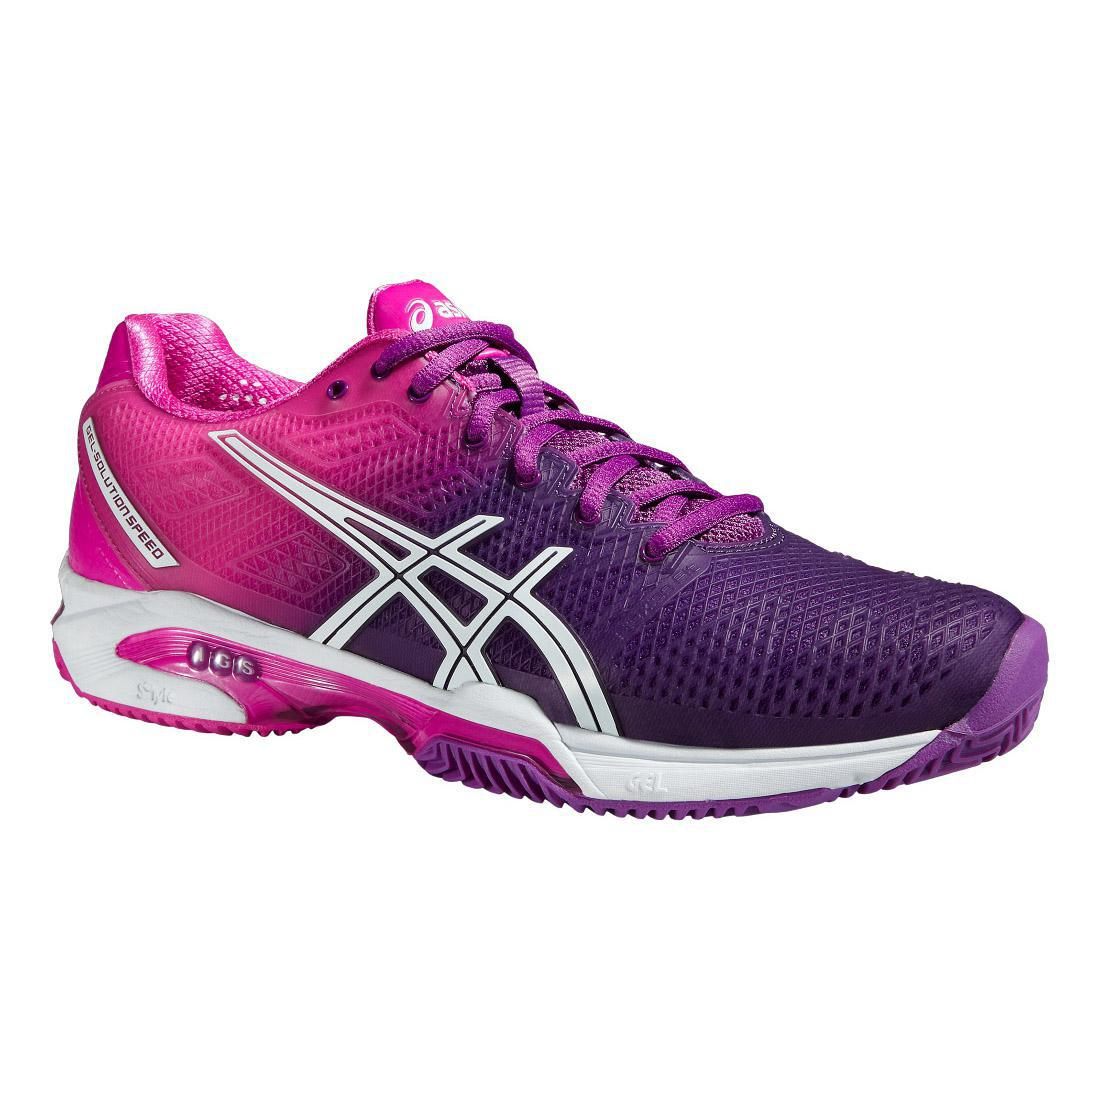 Asics Womens GEL-Solution Speed 2 Clay Court Tennis Shoes - Purple